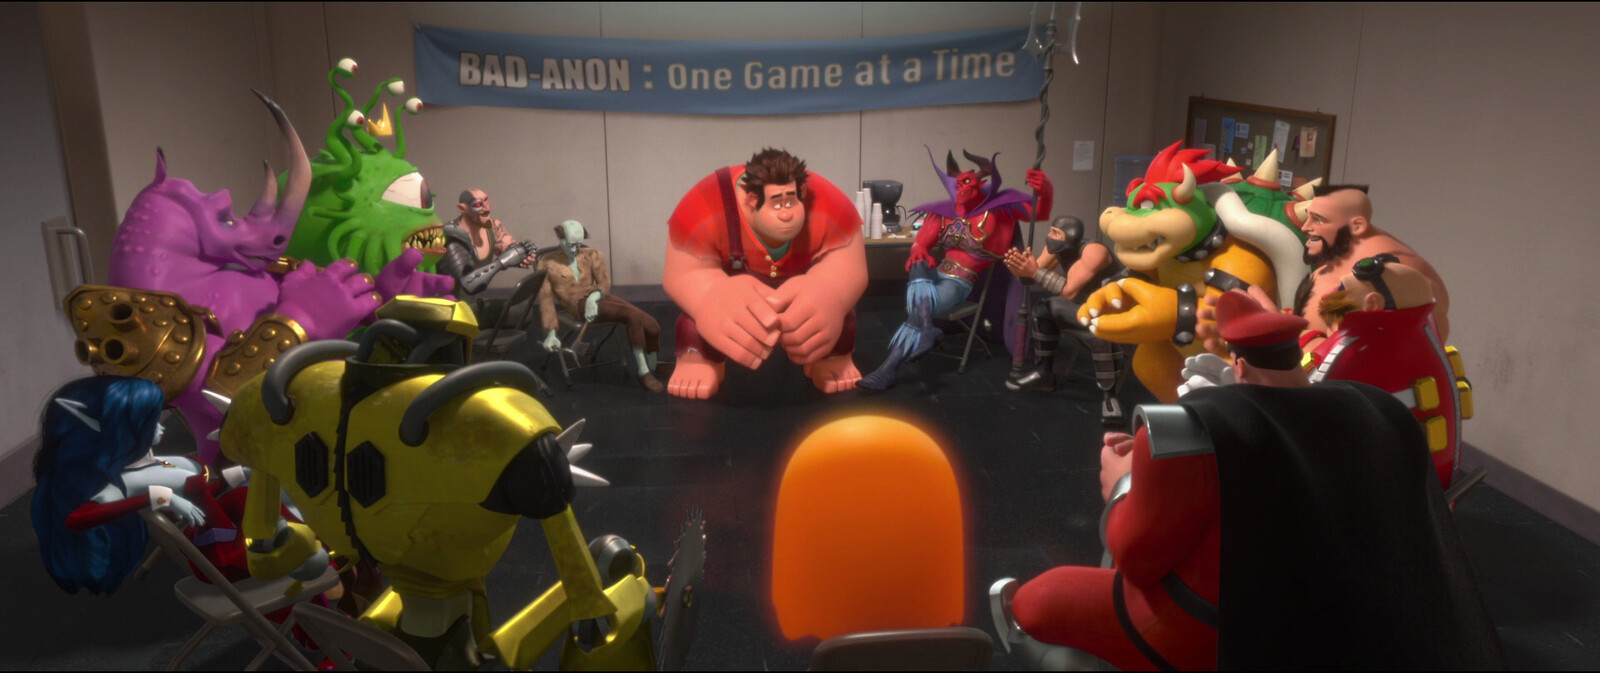 Original Uber Robot - Wreck it Ralph 2012